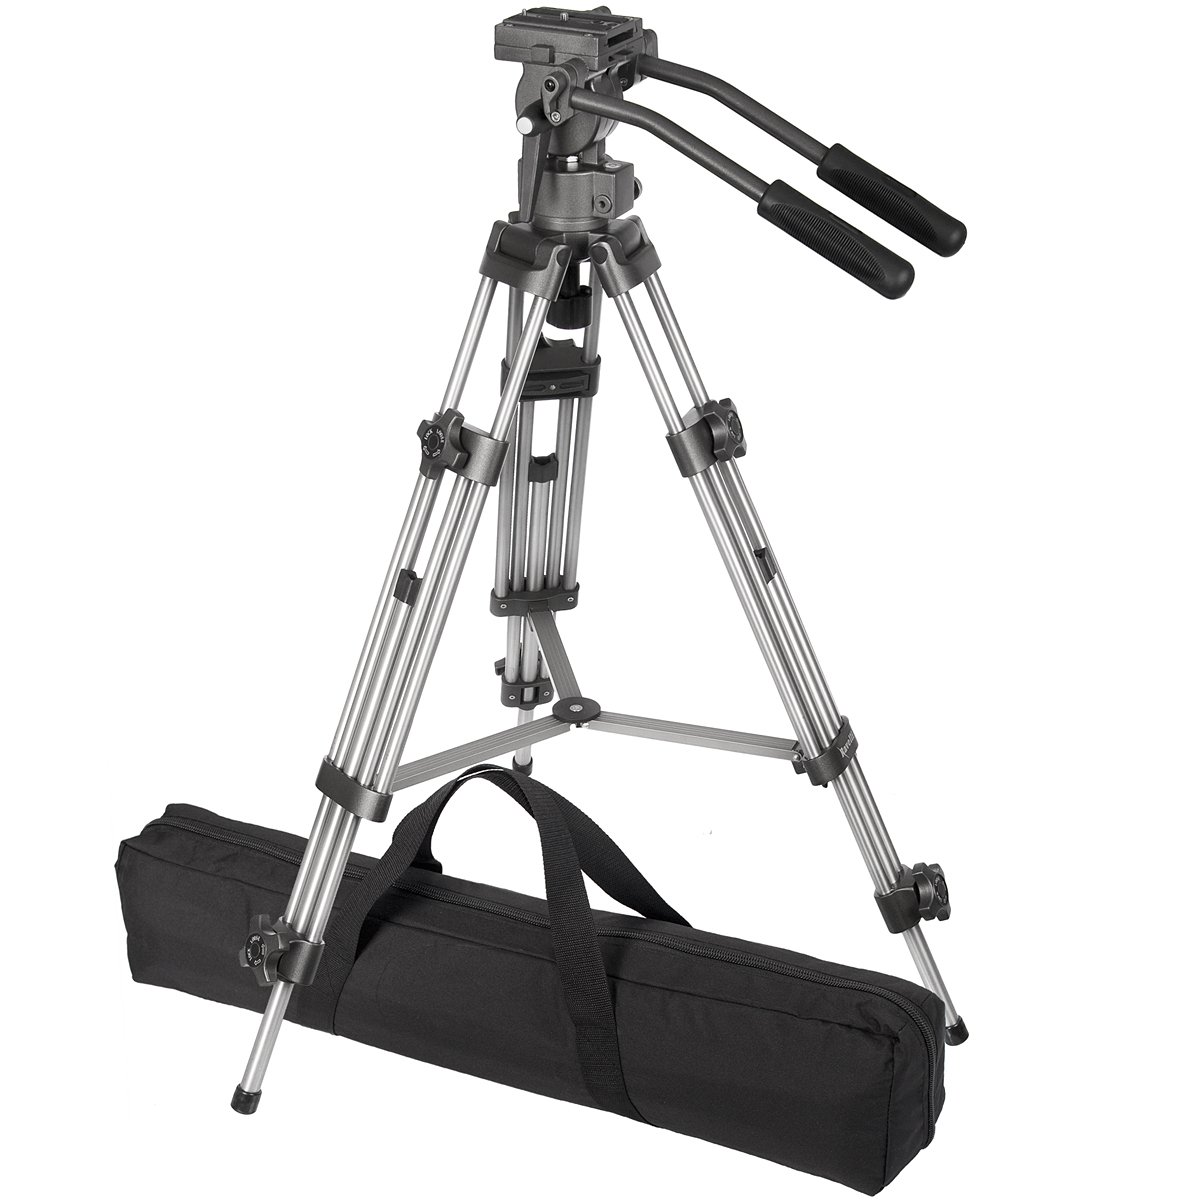 Ravelli AVTP Professional 75mm Video Camera Tripod with Fluid Drag Head by Ravelli